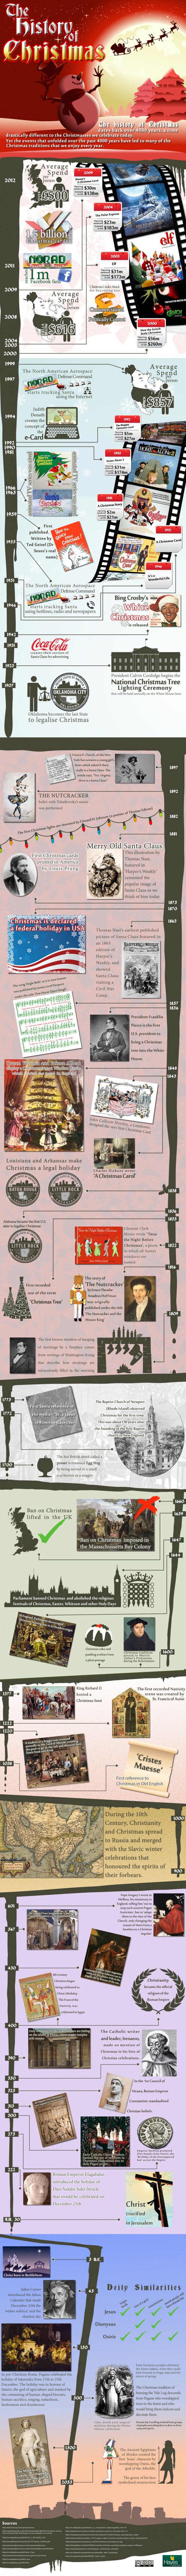 the true history of christmas  2500 bc 50bf0d8ea8613 w587 How the Celebration of Christmas Has Evolved Over the Centuries [Infographic]